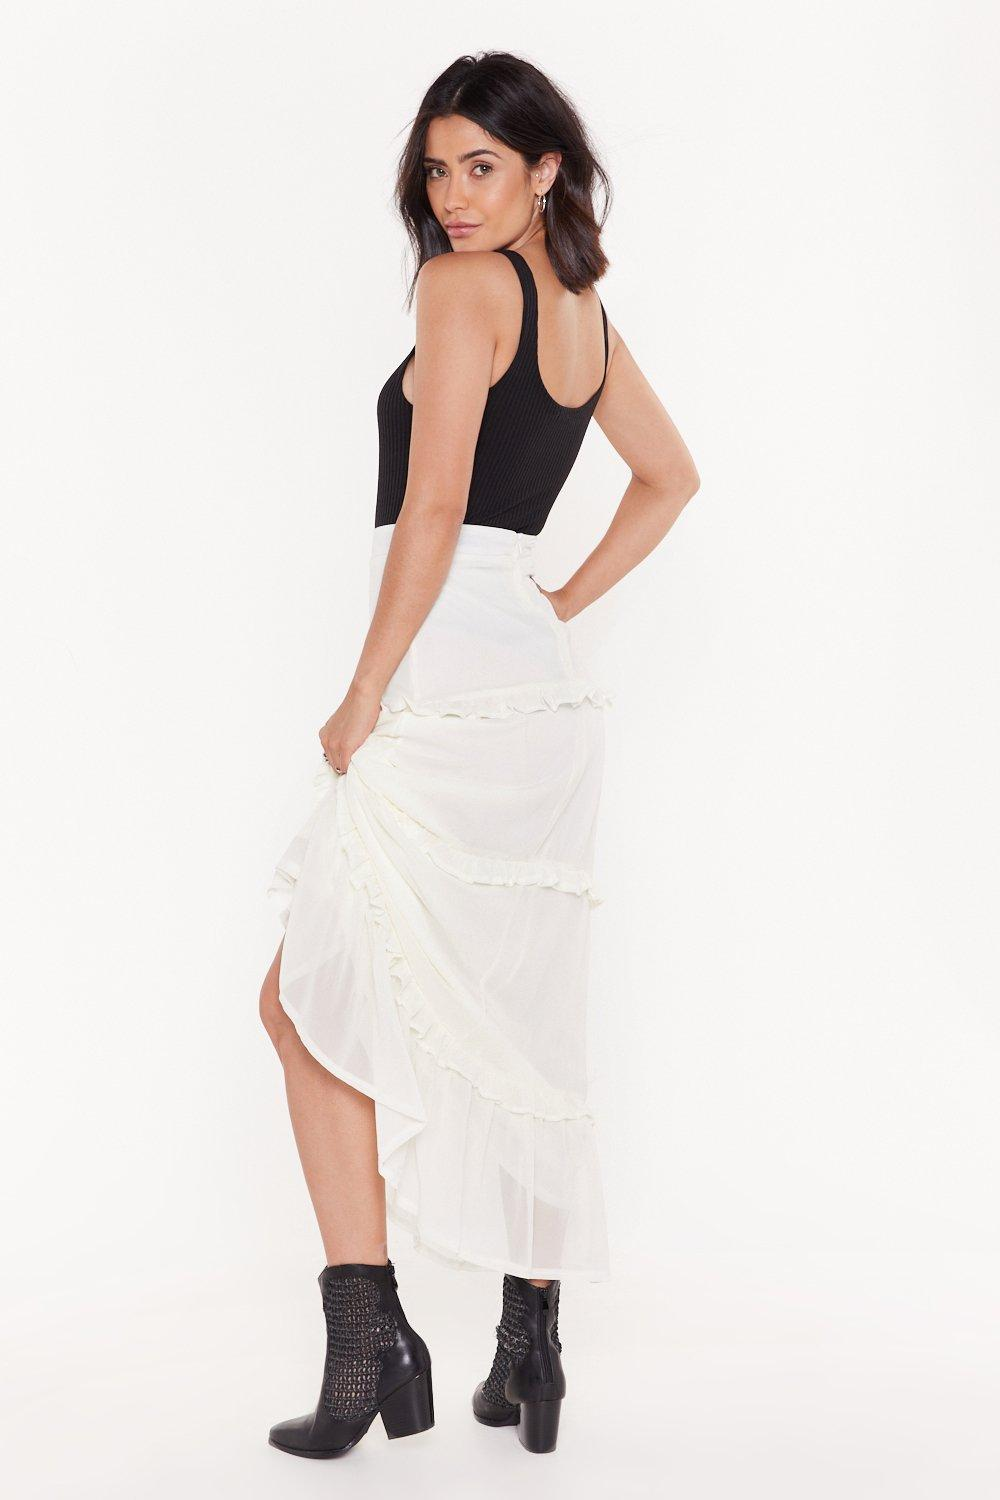 8b85b0710f99a Frills in the Night High-Waisted Maxi Skirt | Shop Clothes at Nasty Gal!